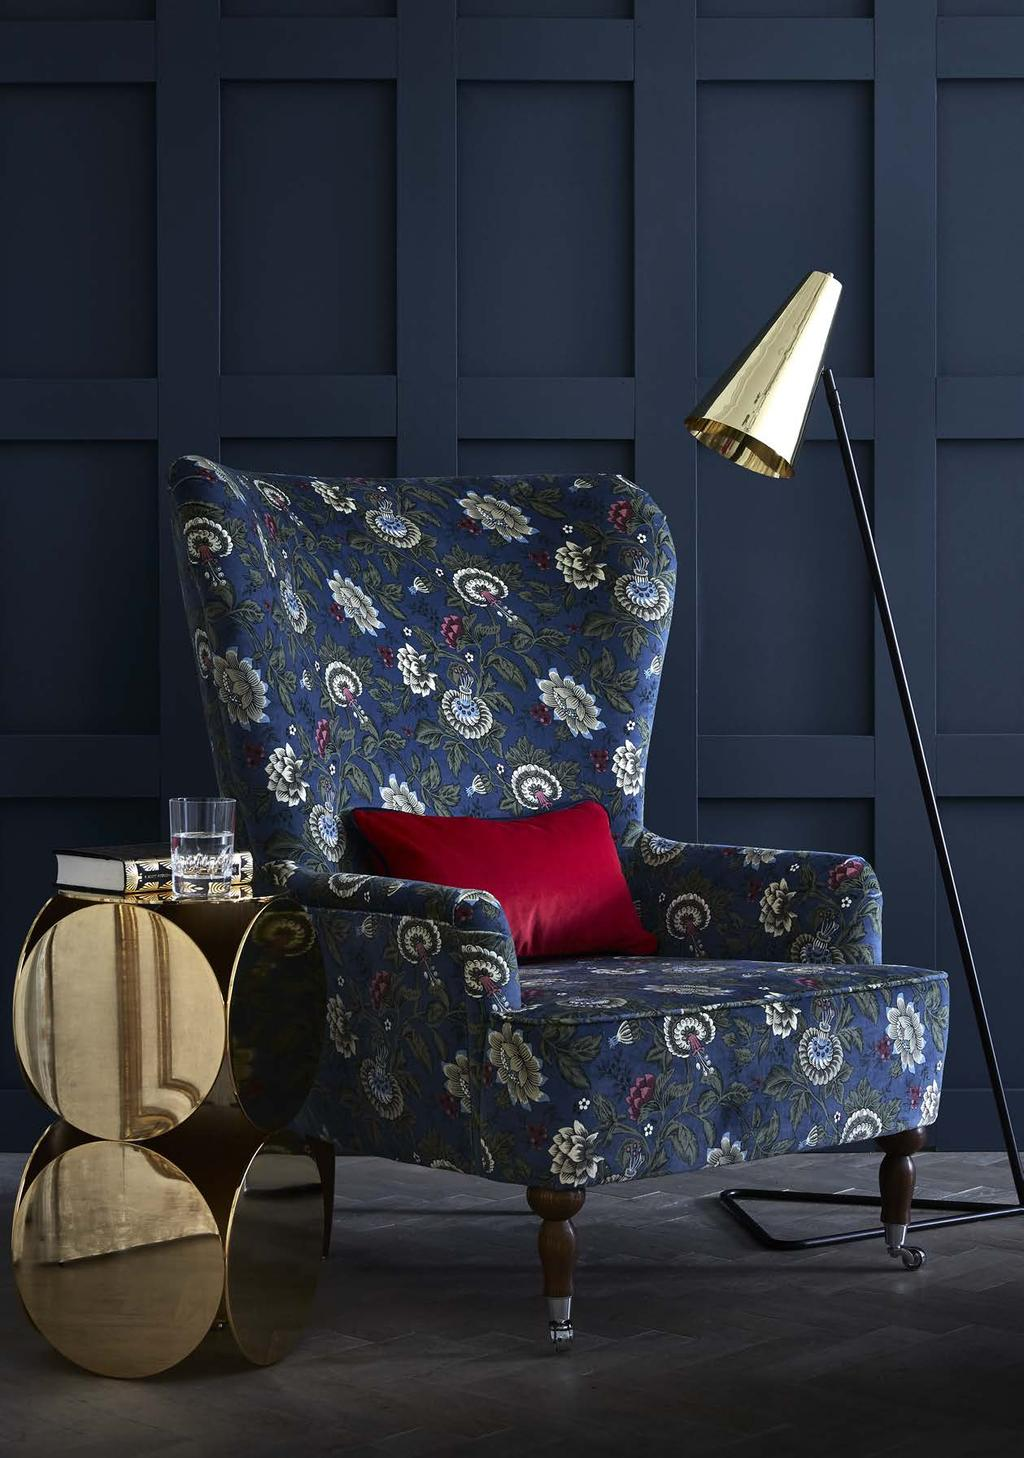 TONQUIN VELVET A sumptuous natural cotton velvet printed in two contemporary colour stories: teal with grey, and a rich indigo with mossy green detailing.